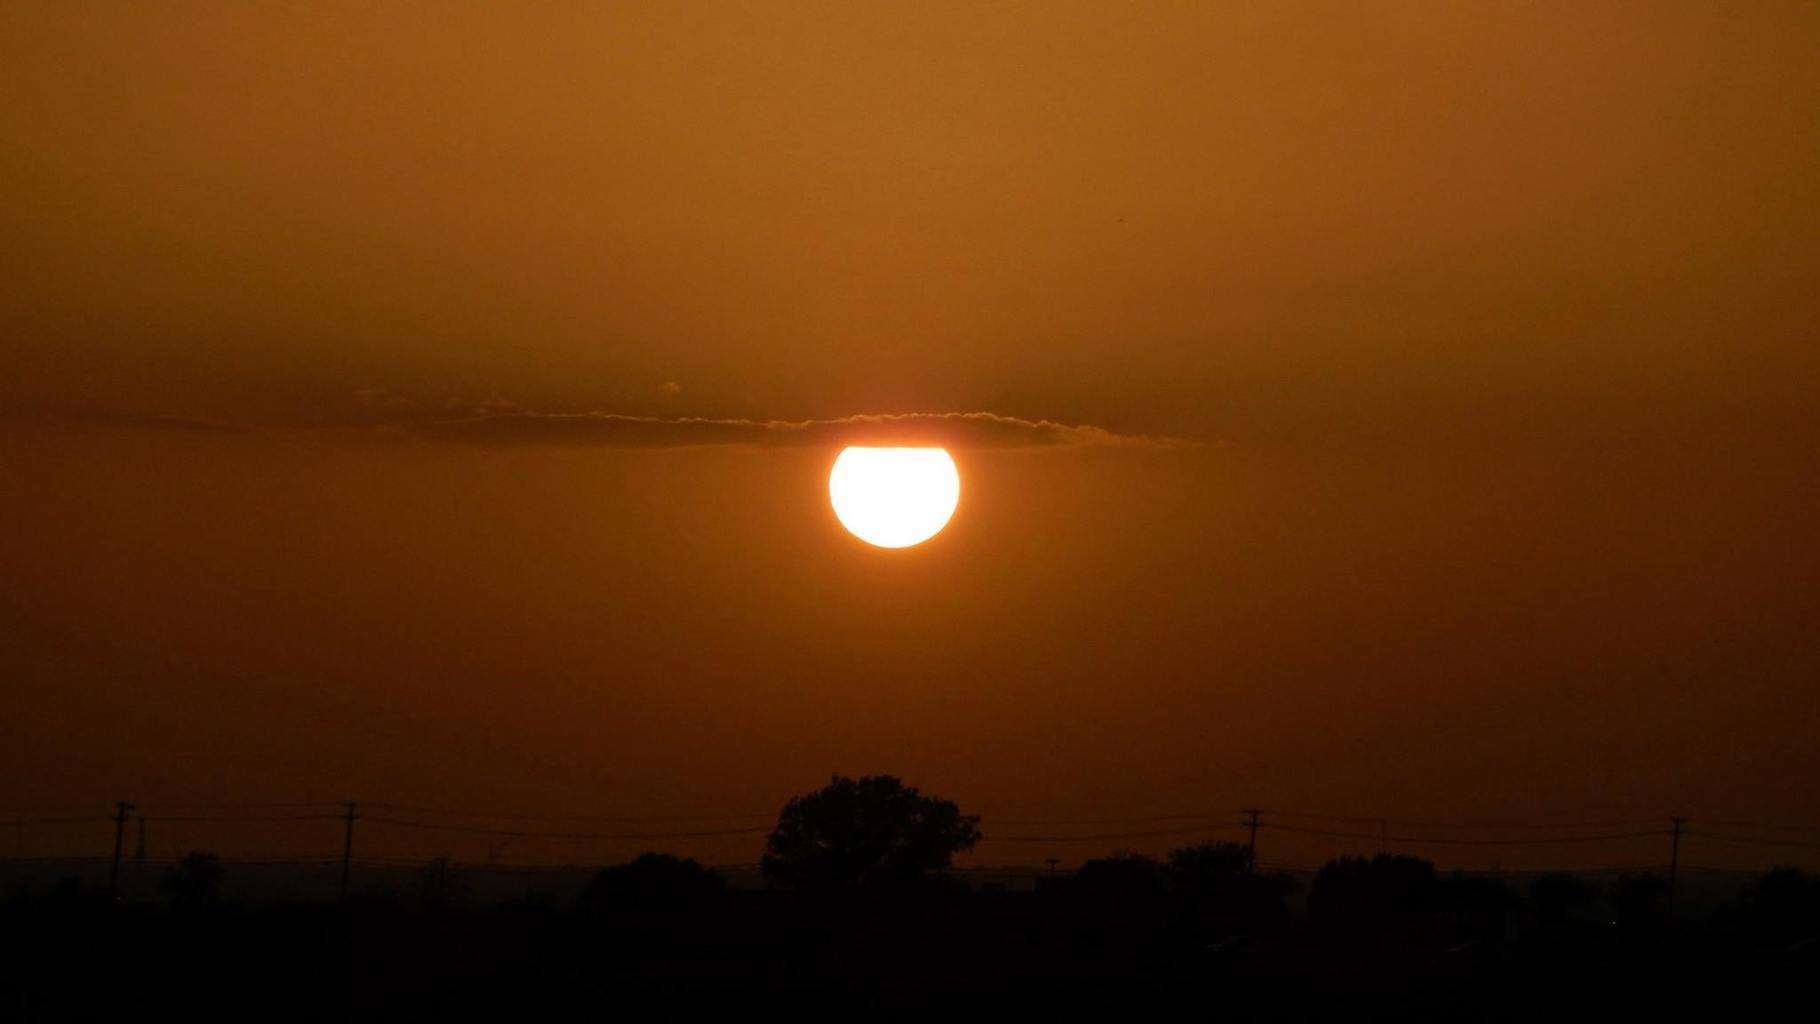 The sun hanging off a cloud. Photo was taken August, 2014 Texas